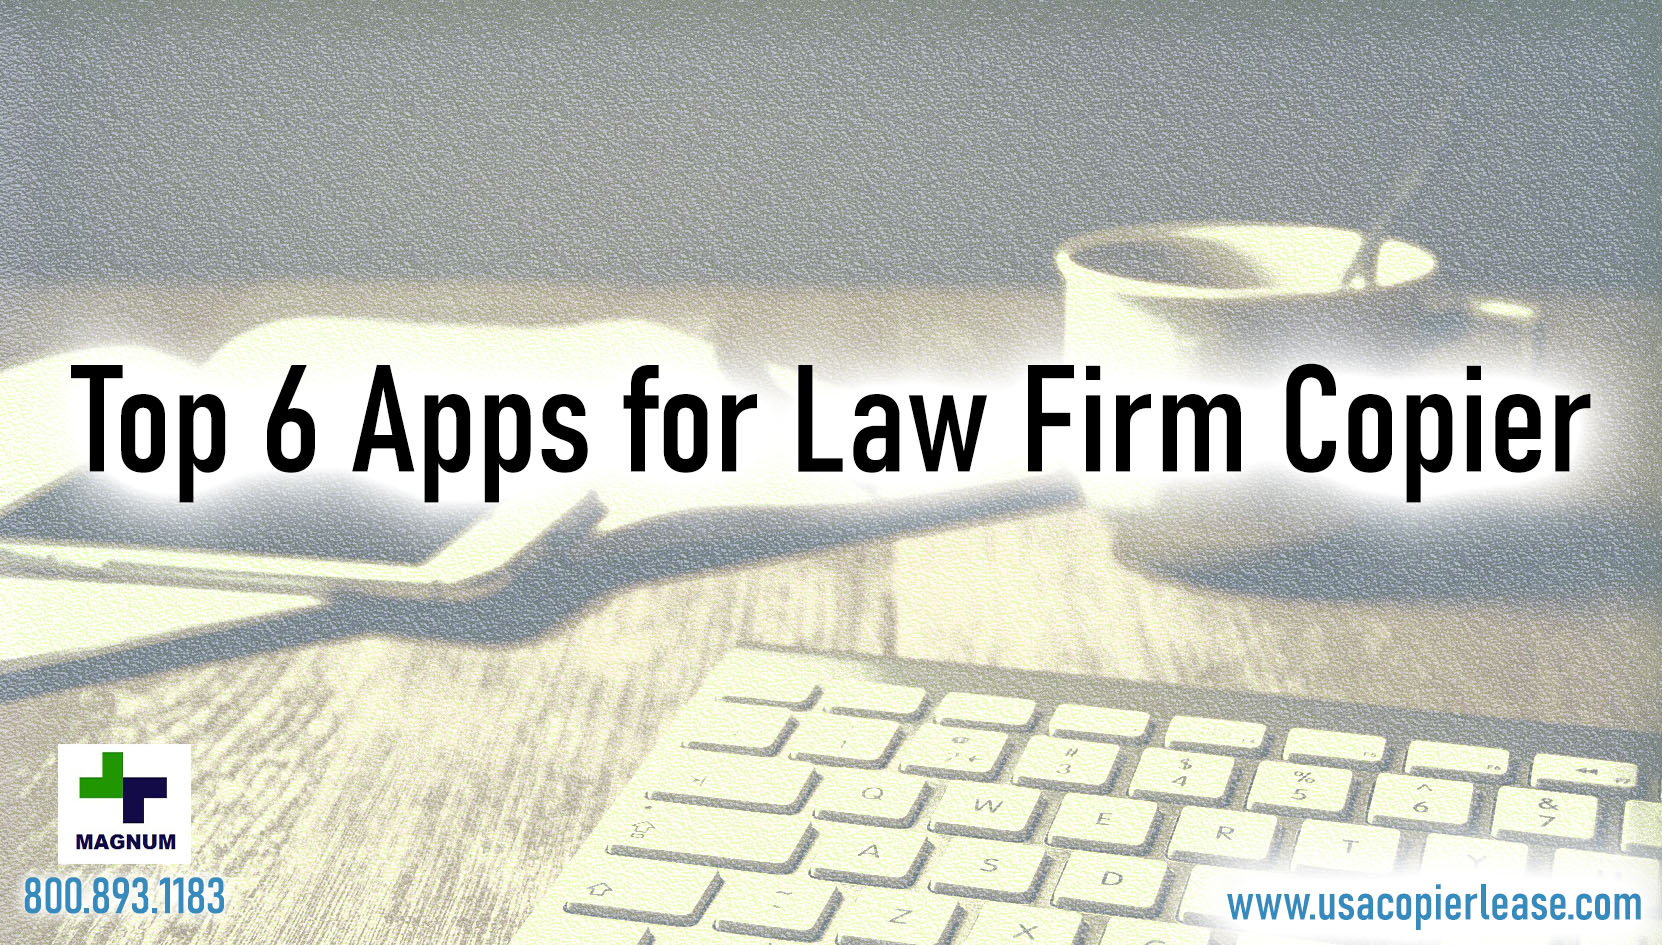 Top 6 Must-Have Copier Apps for Law Firms?